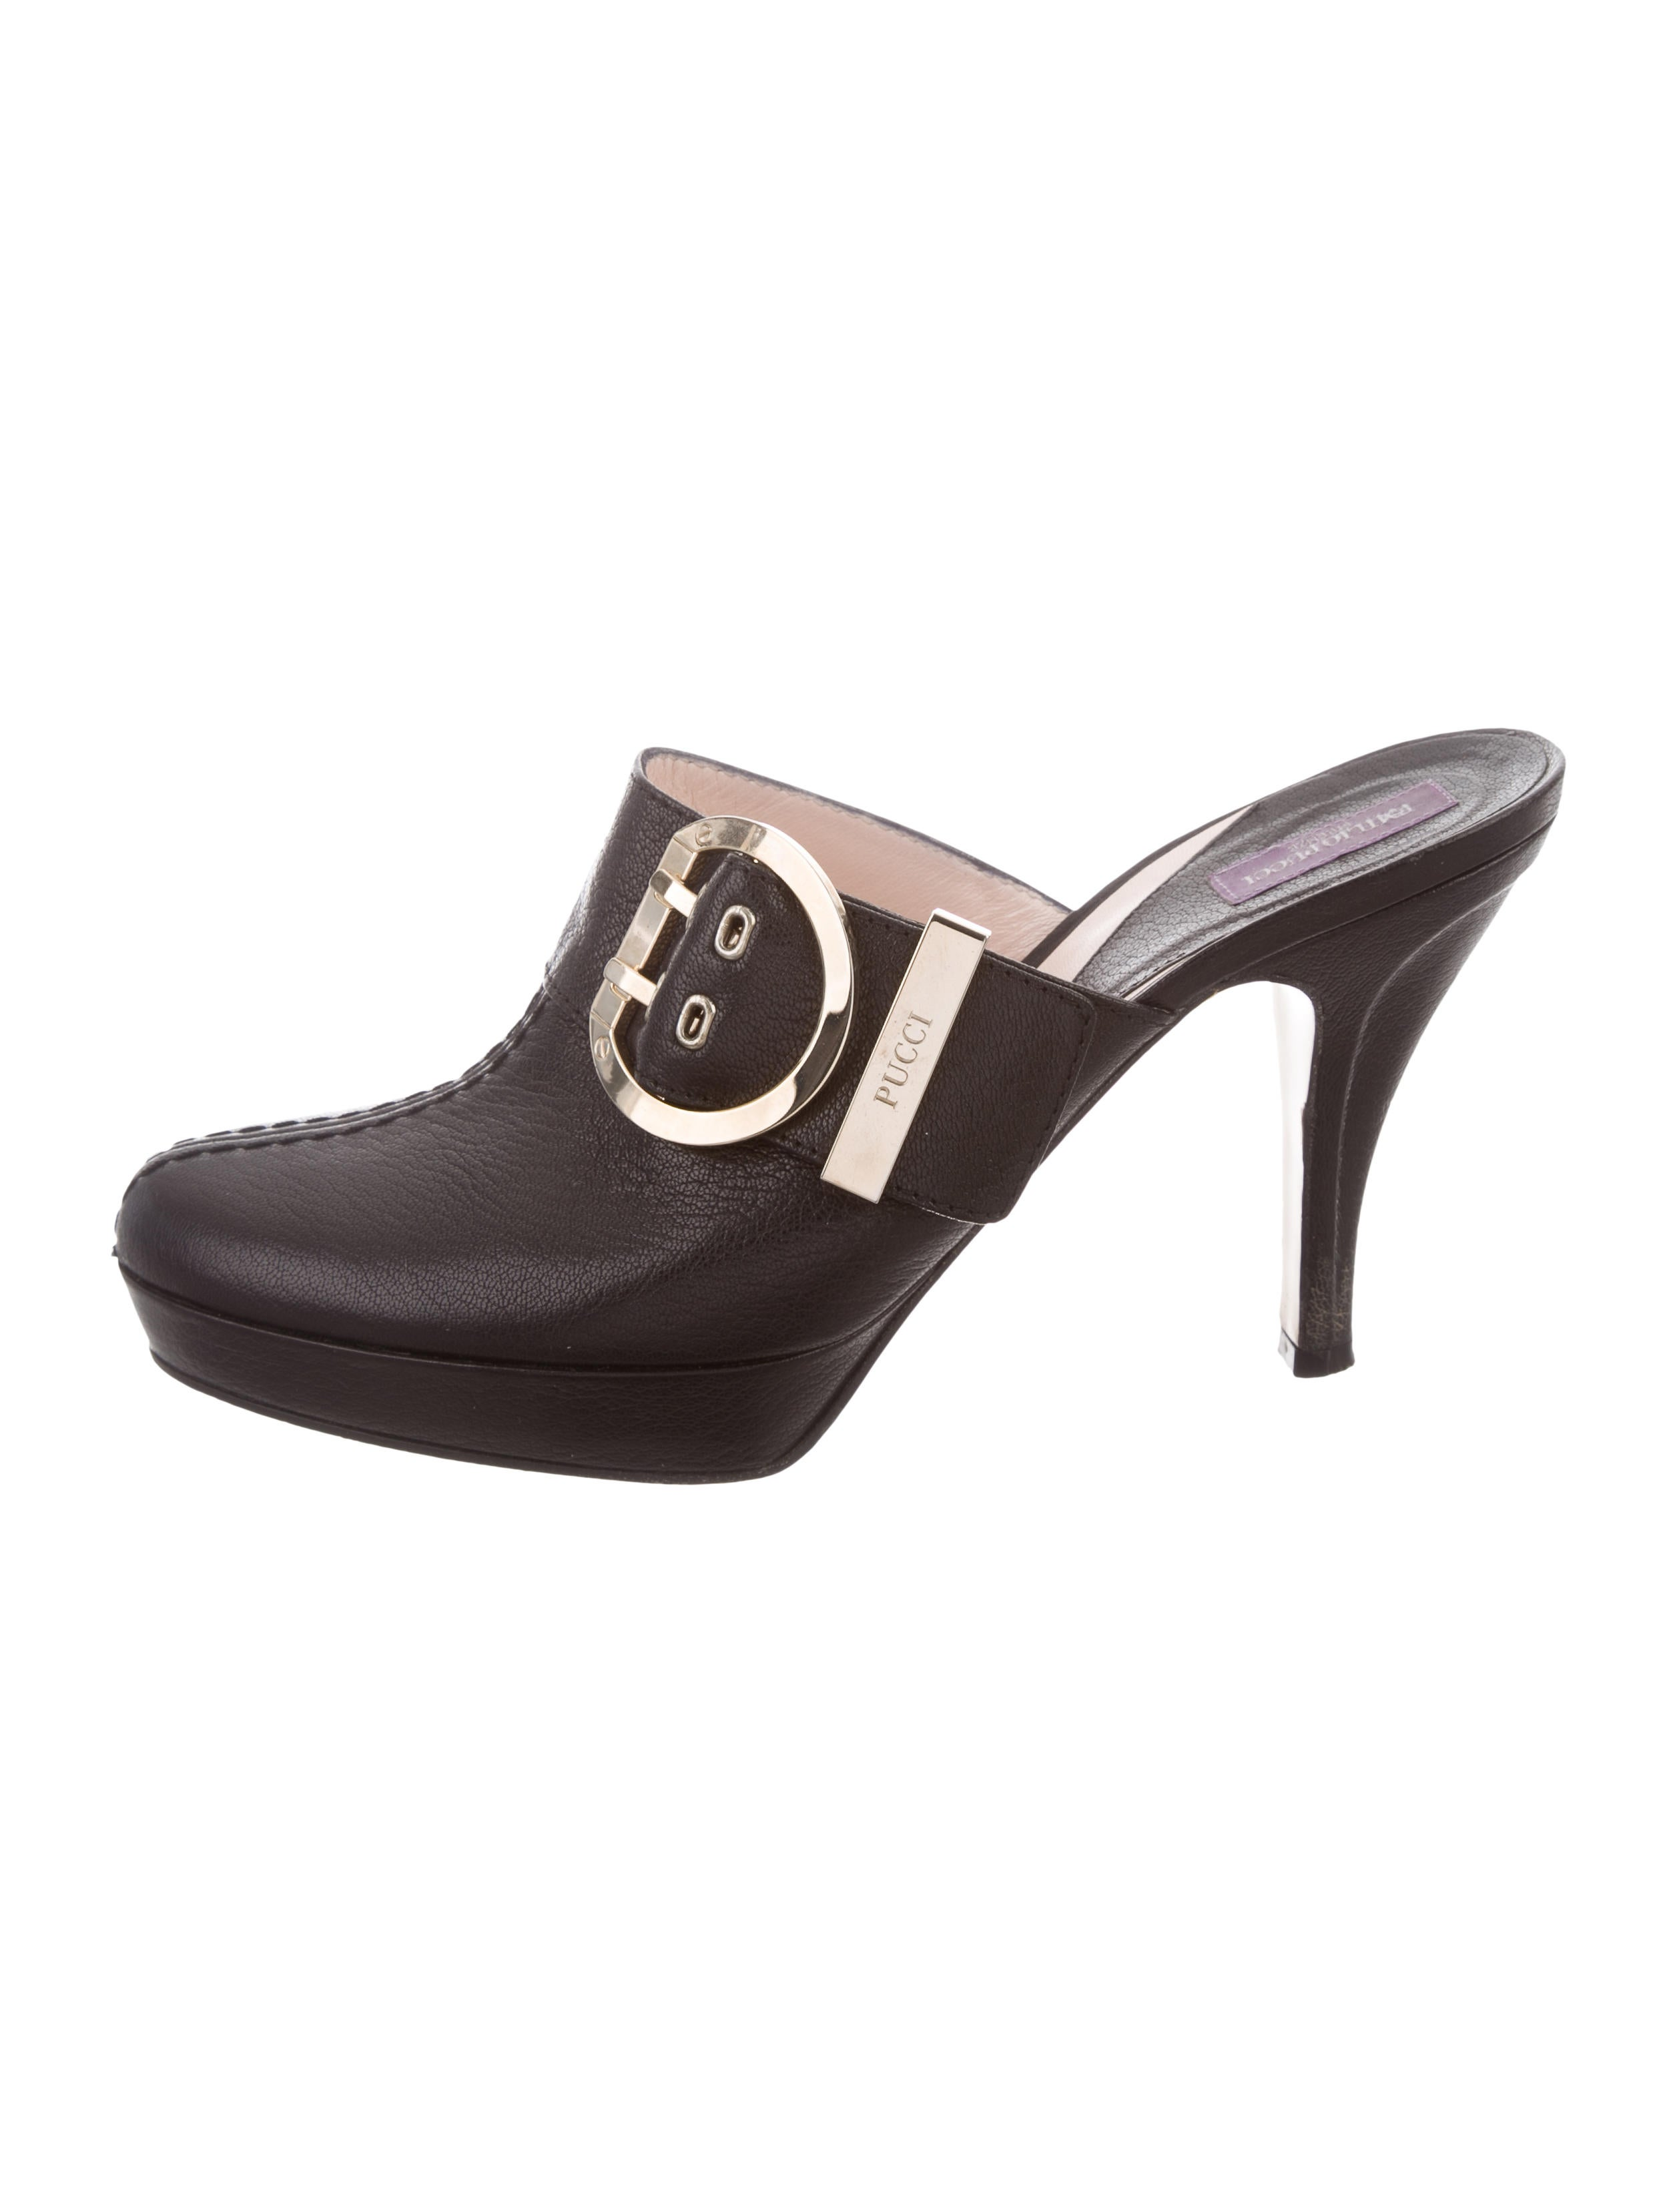 Emilio Pucci Platform Semi Pointed-Toe Clogs discount browse collections cheap price x8nw9vg